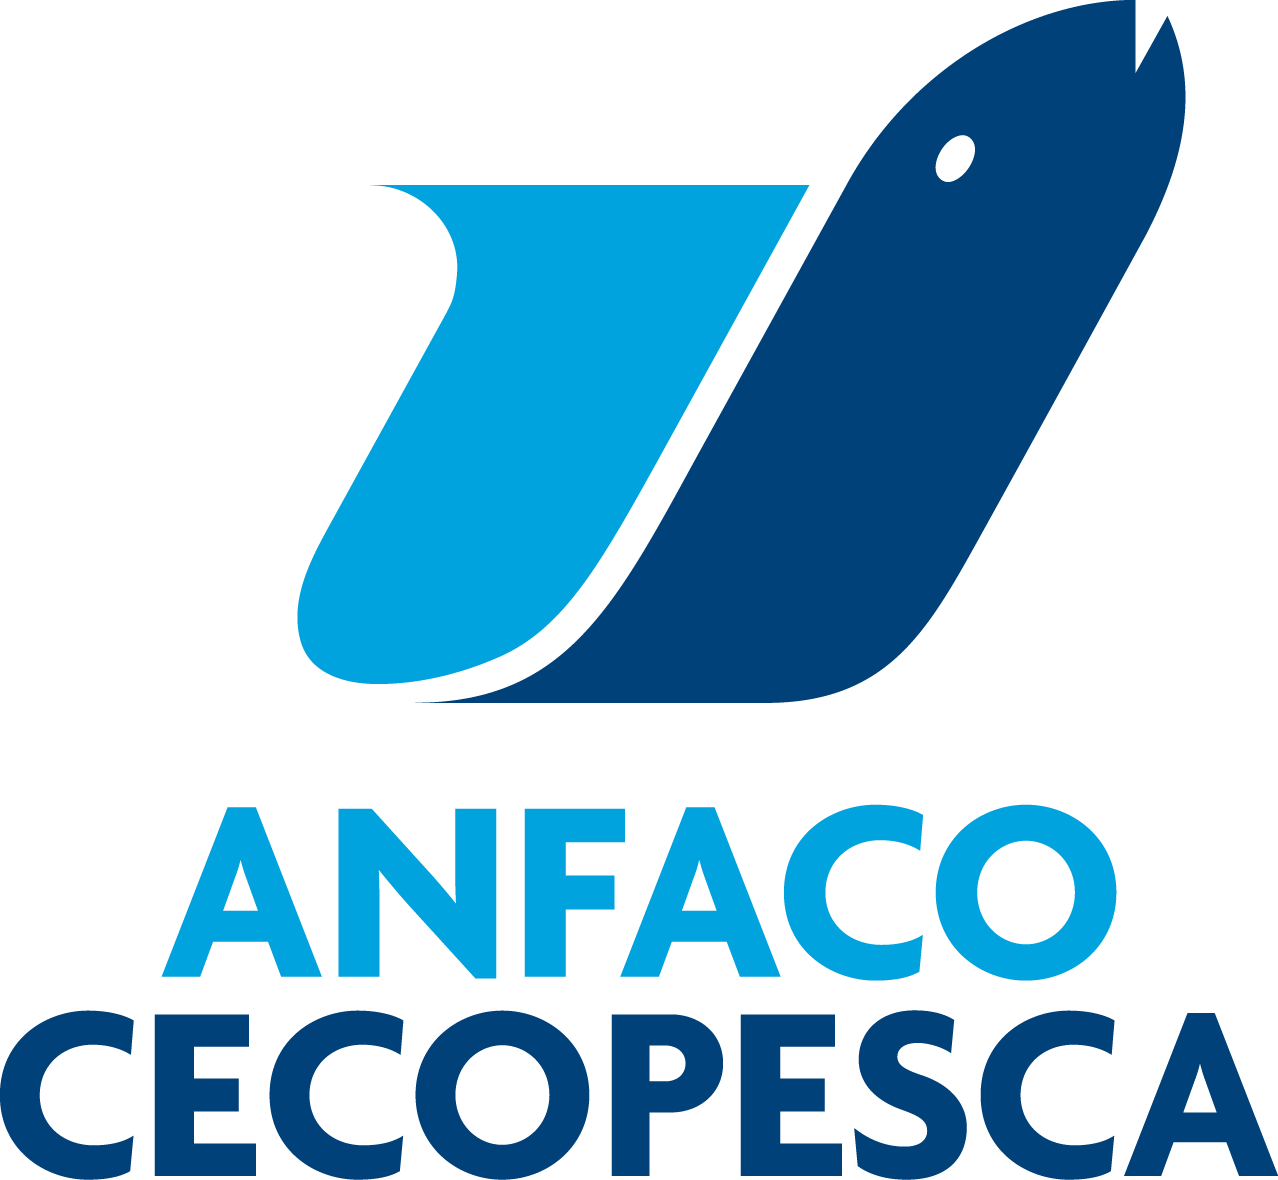 Anfaco